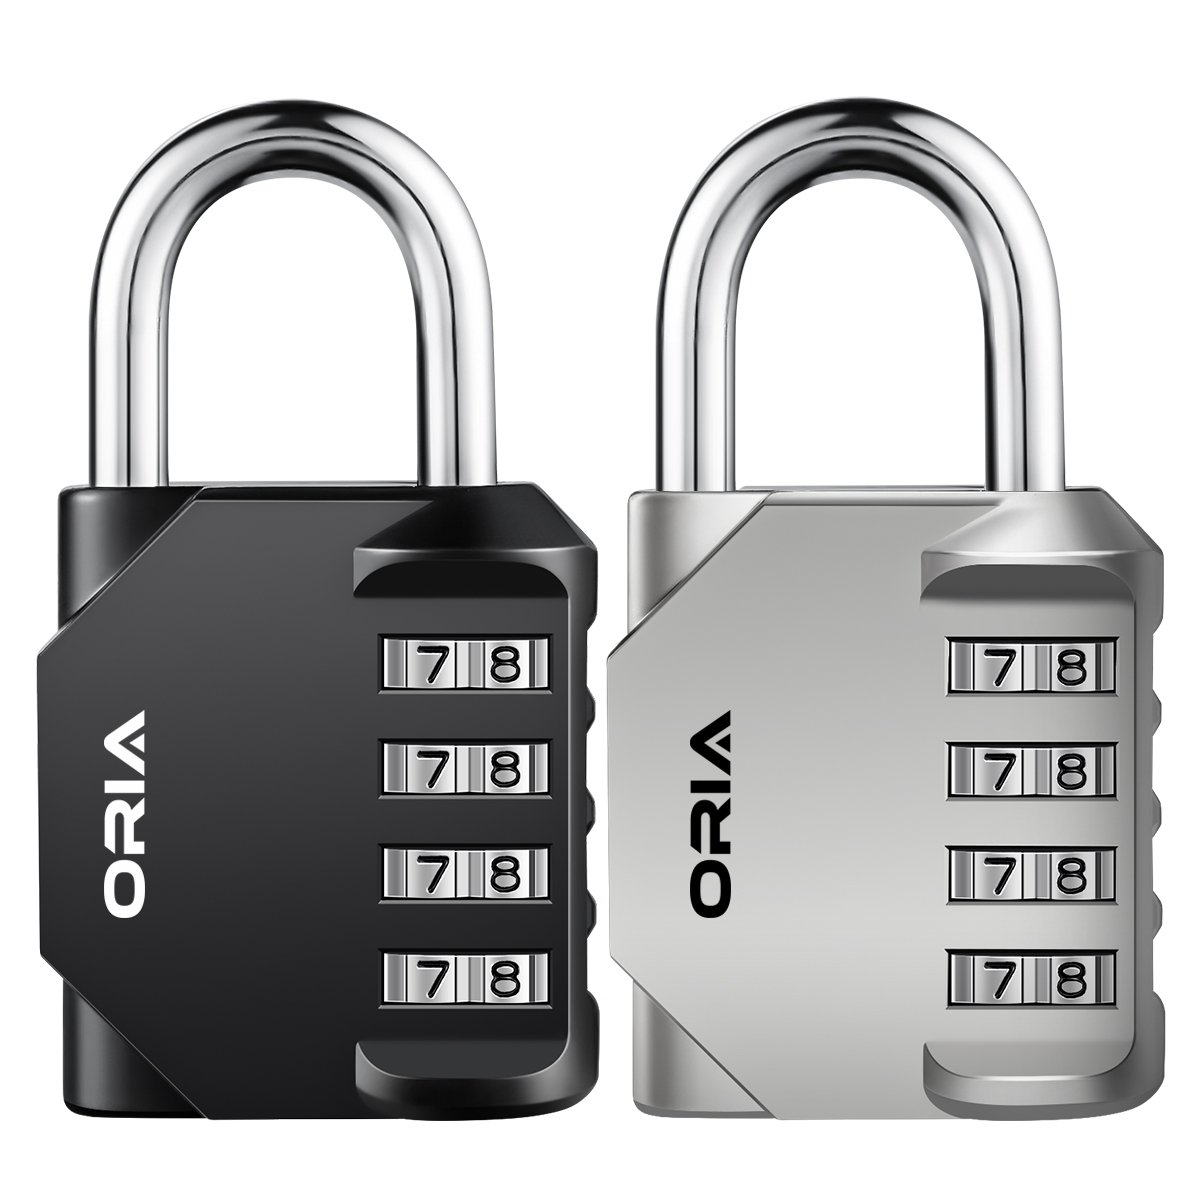 ORIA 4 Digit Combination Lock, 2 Pack Padlock for School, Employee, Gym & Sports Locker, Case, Toolbox, Fence, Hasp Cabinet & Storage - Metal & Plated Steel